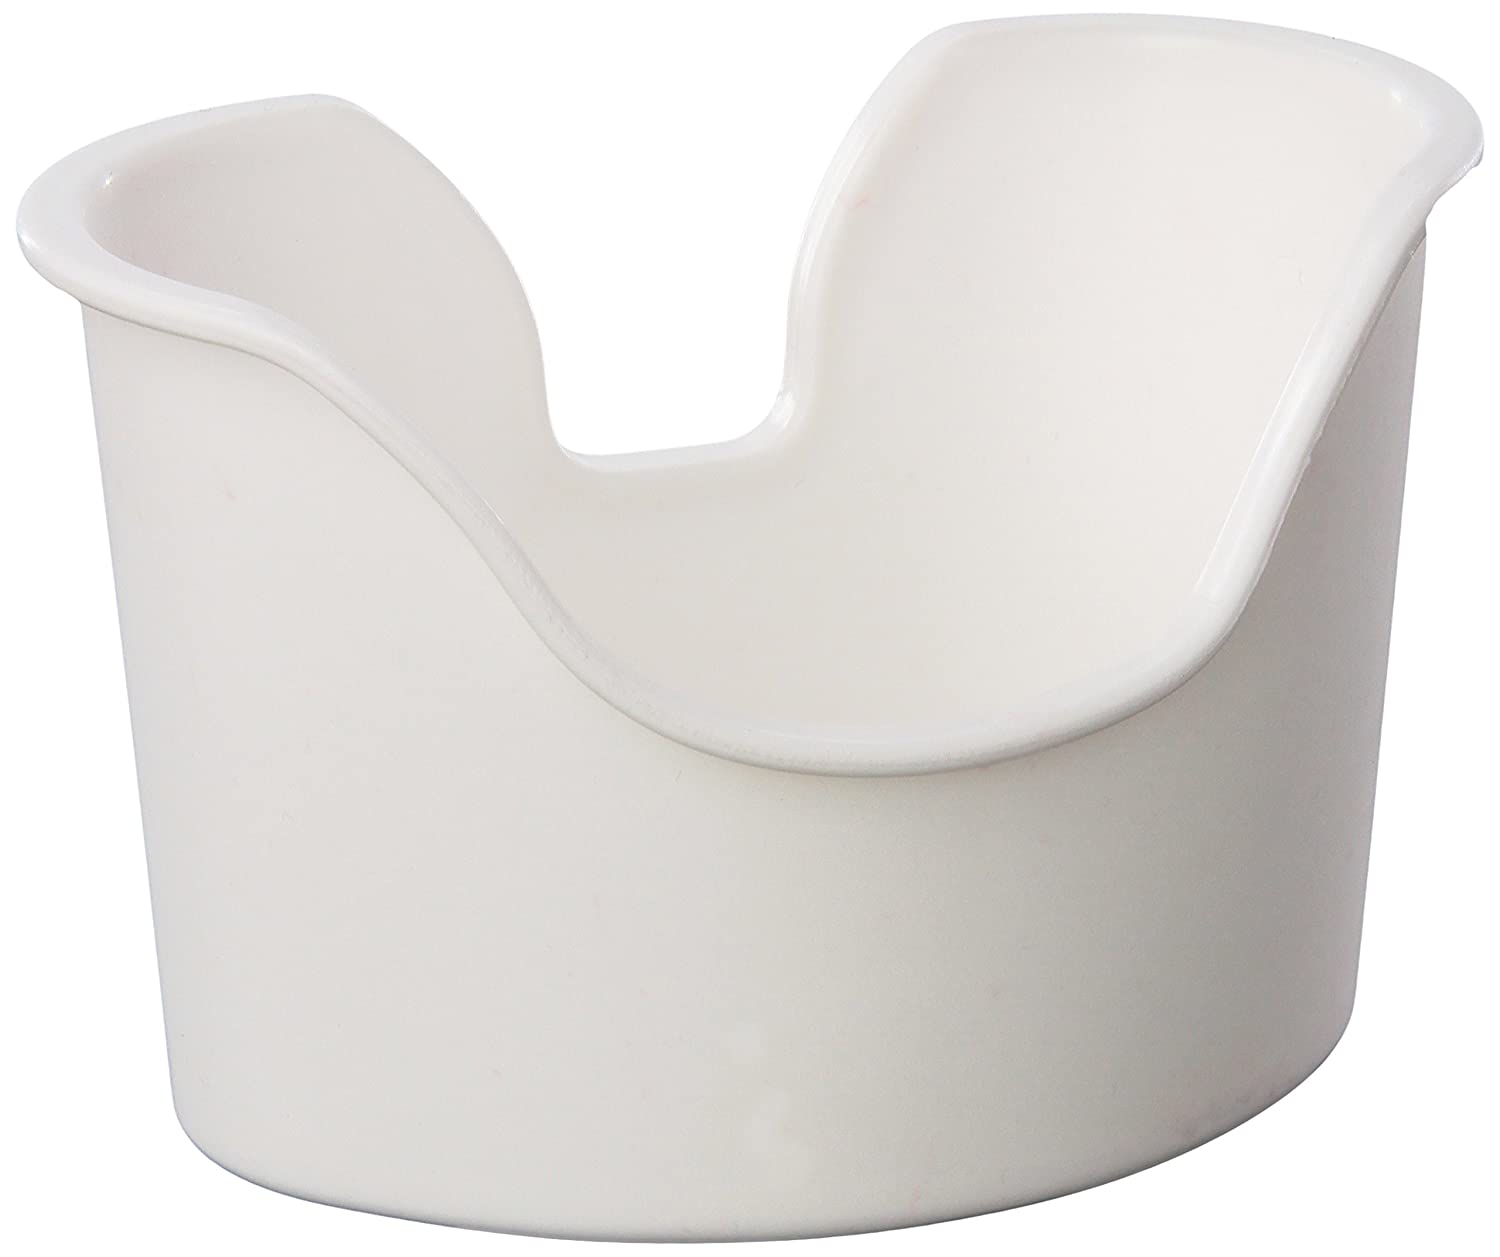 Goldnamer Ear Basin for Ear Wax Removal and Ear Cleaning, 1280